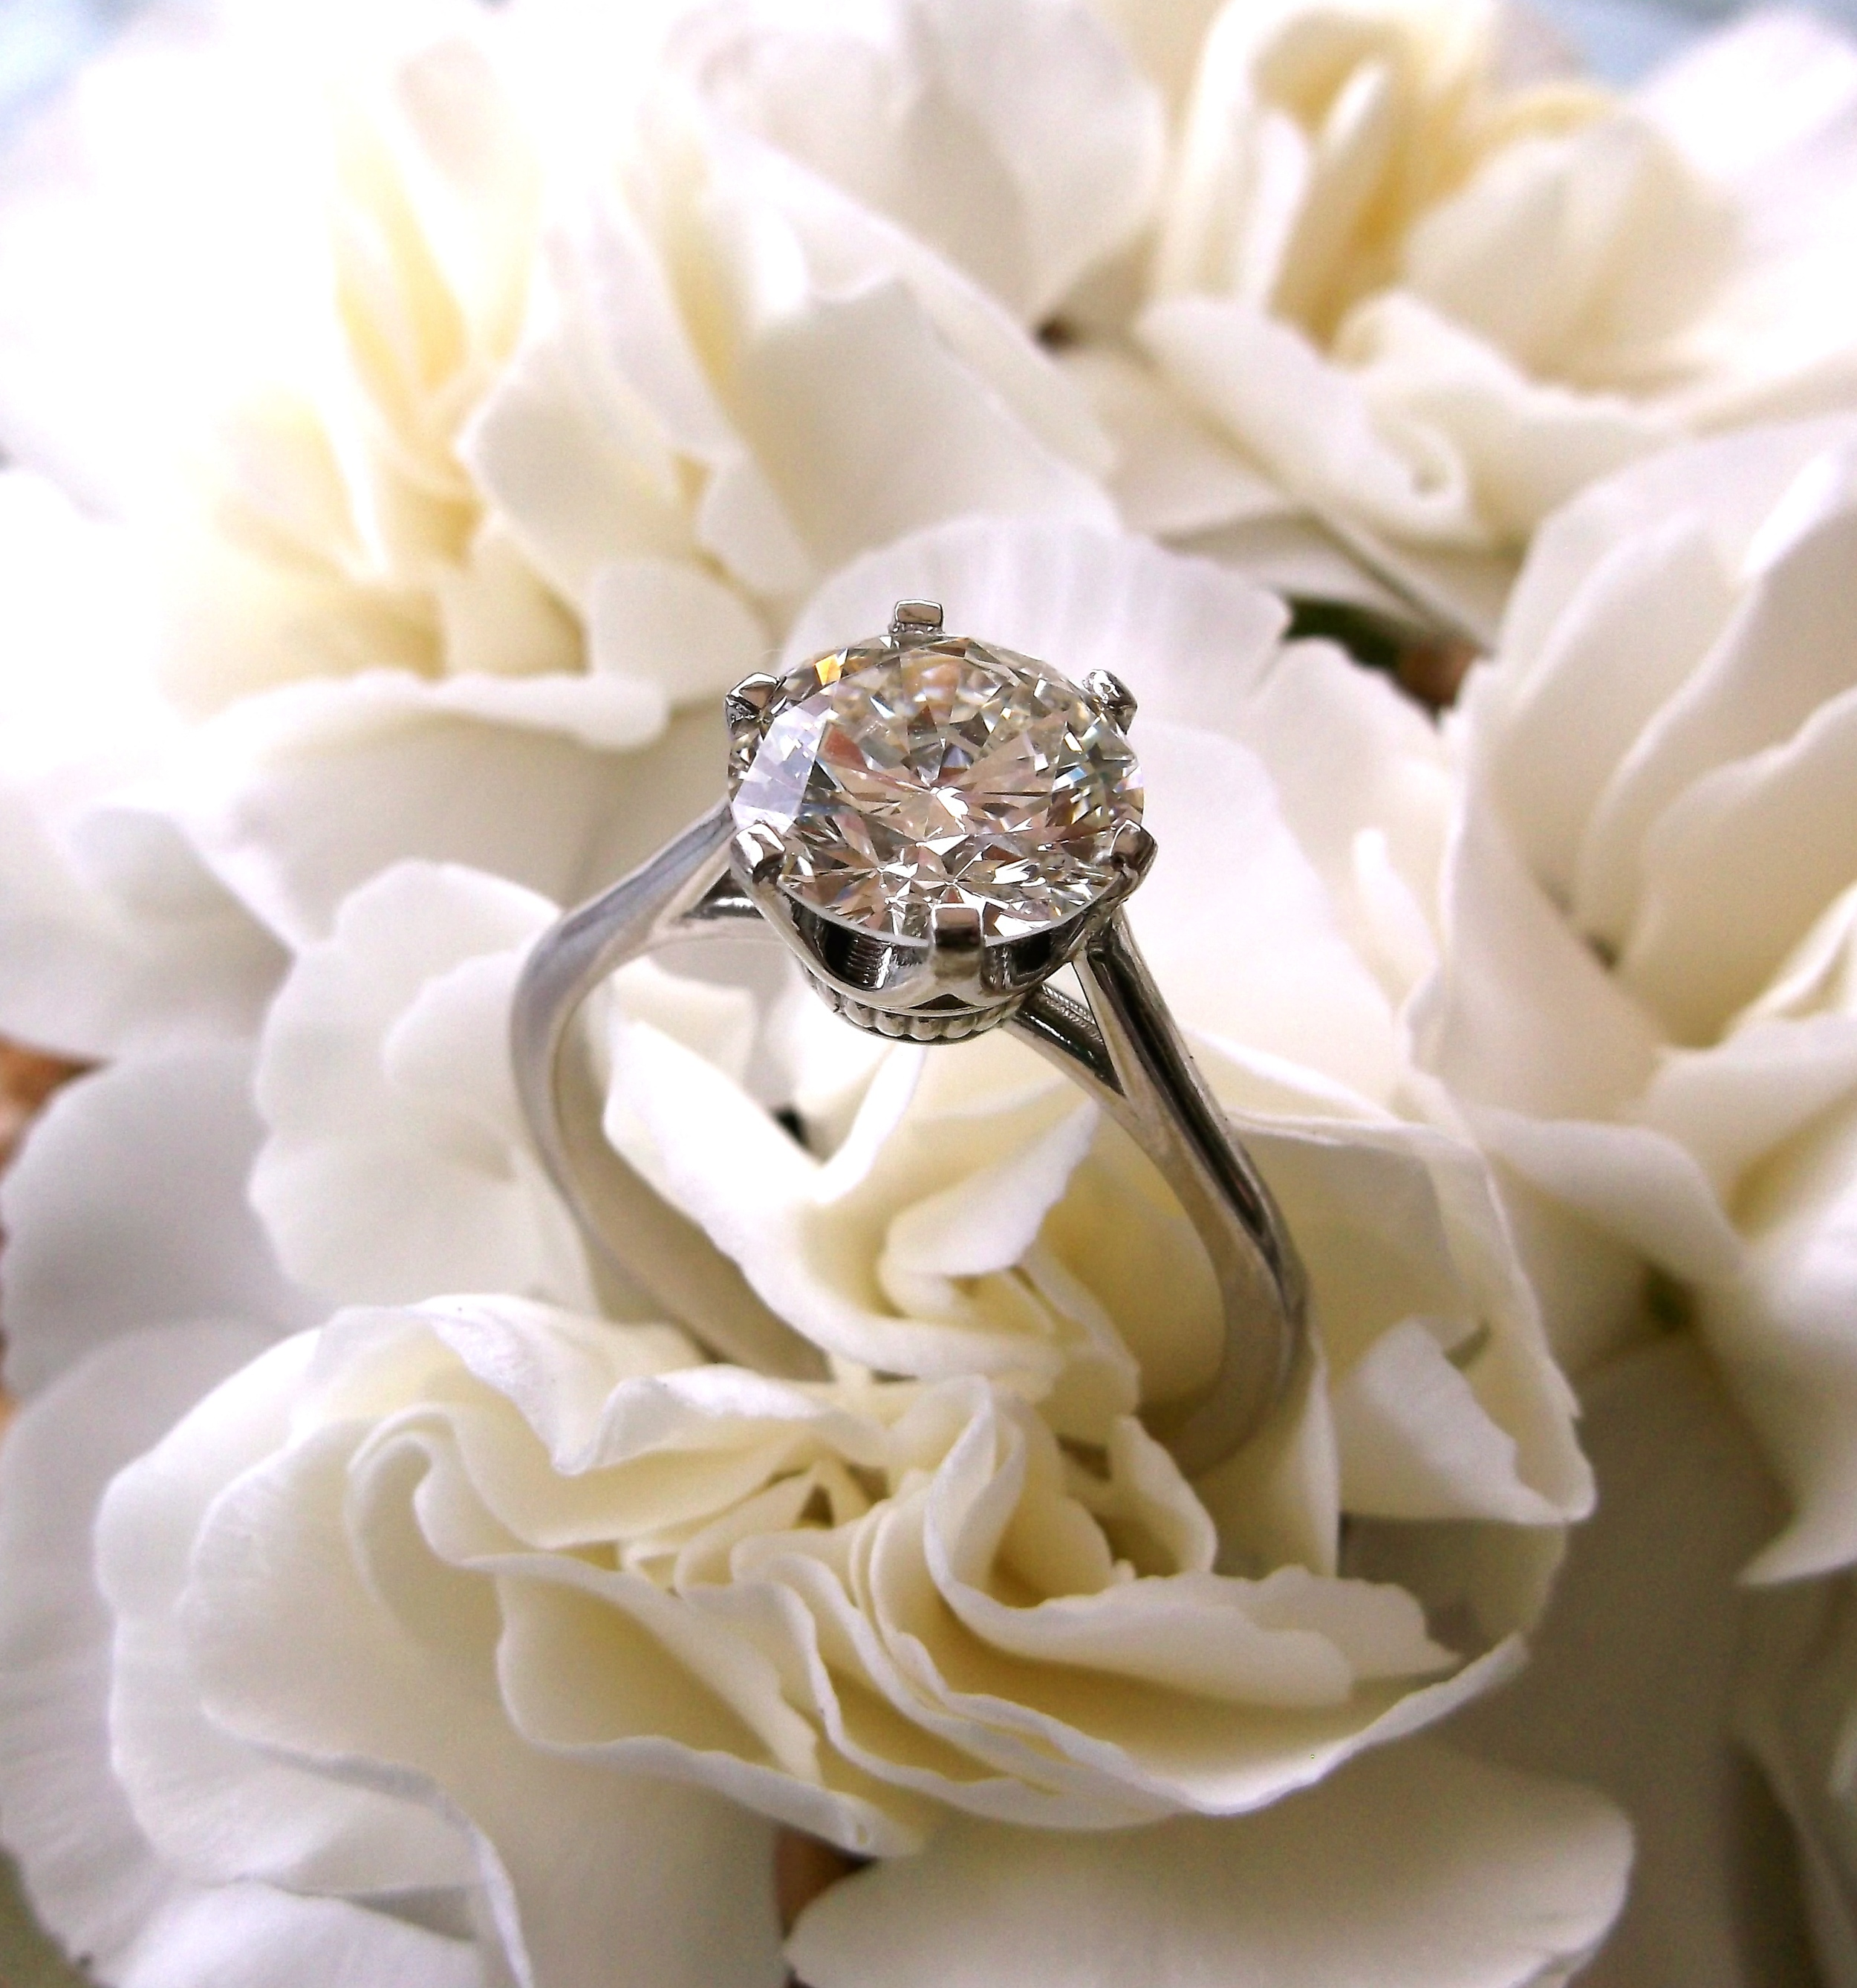 SOLD - A classic beauty! 2.00 carat Old European cut diamond set in a dainty six prong mounting.